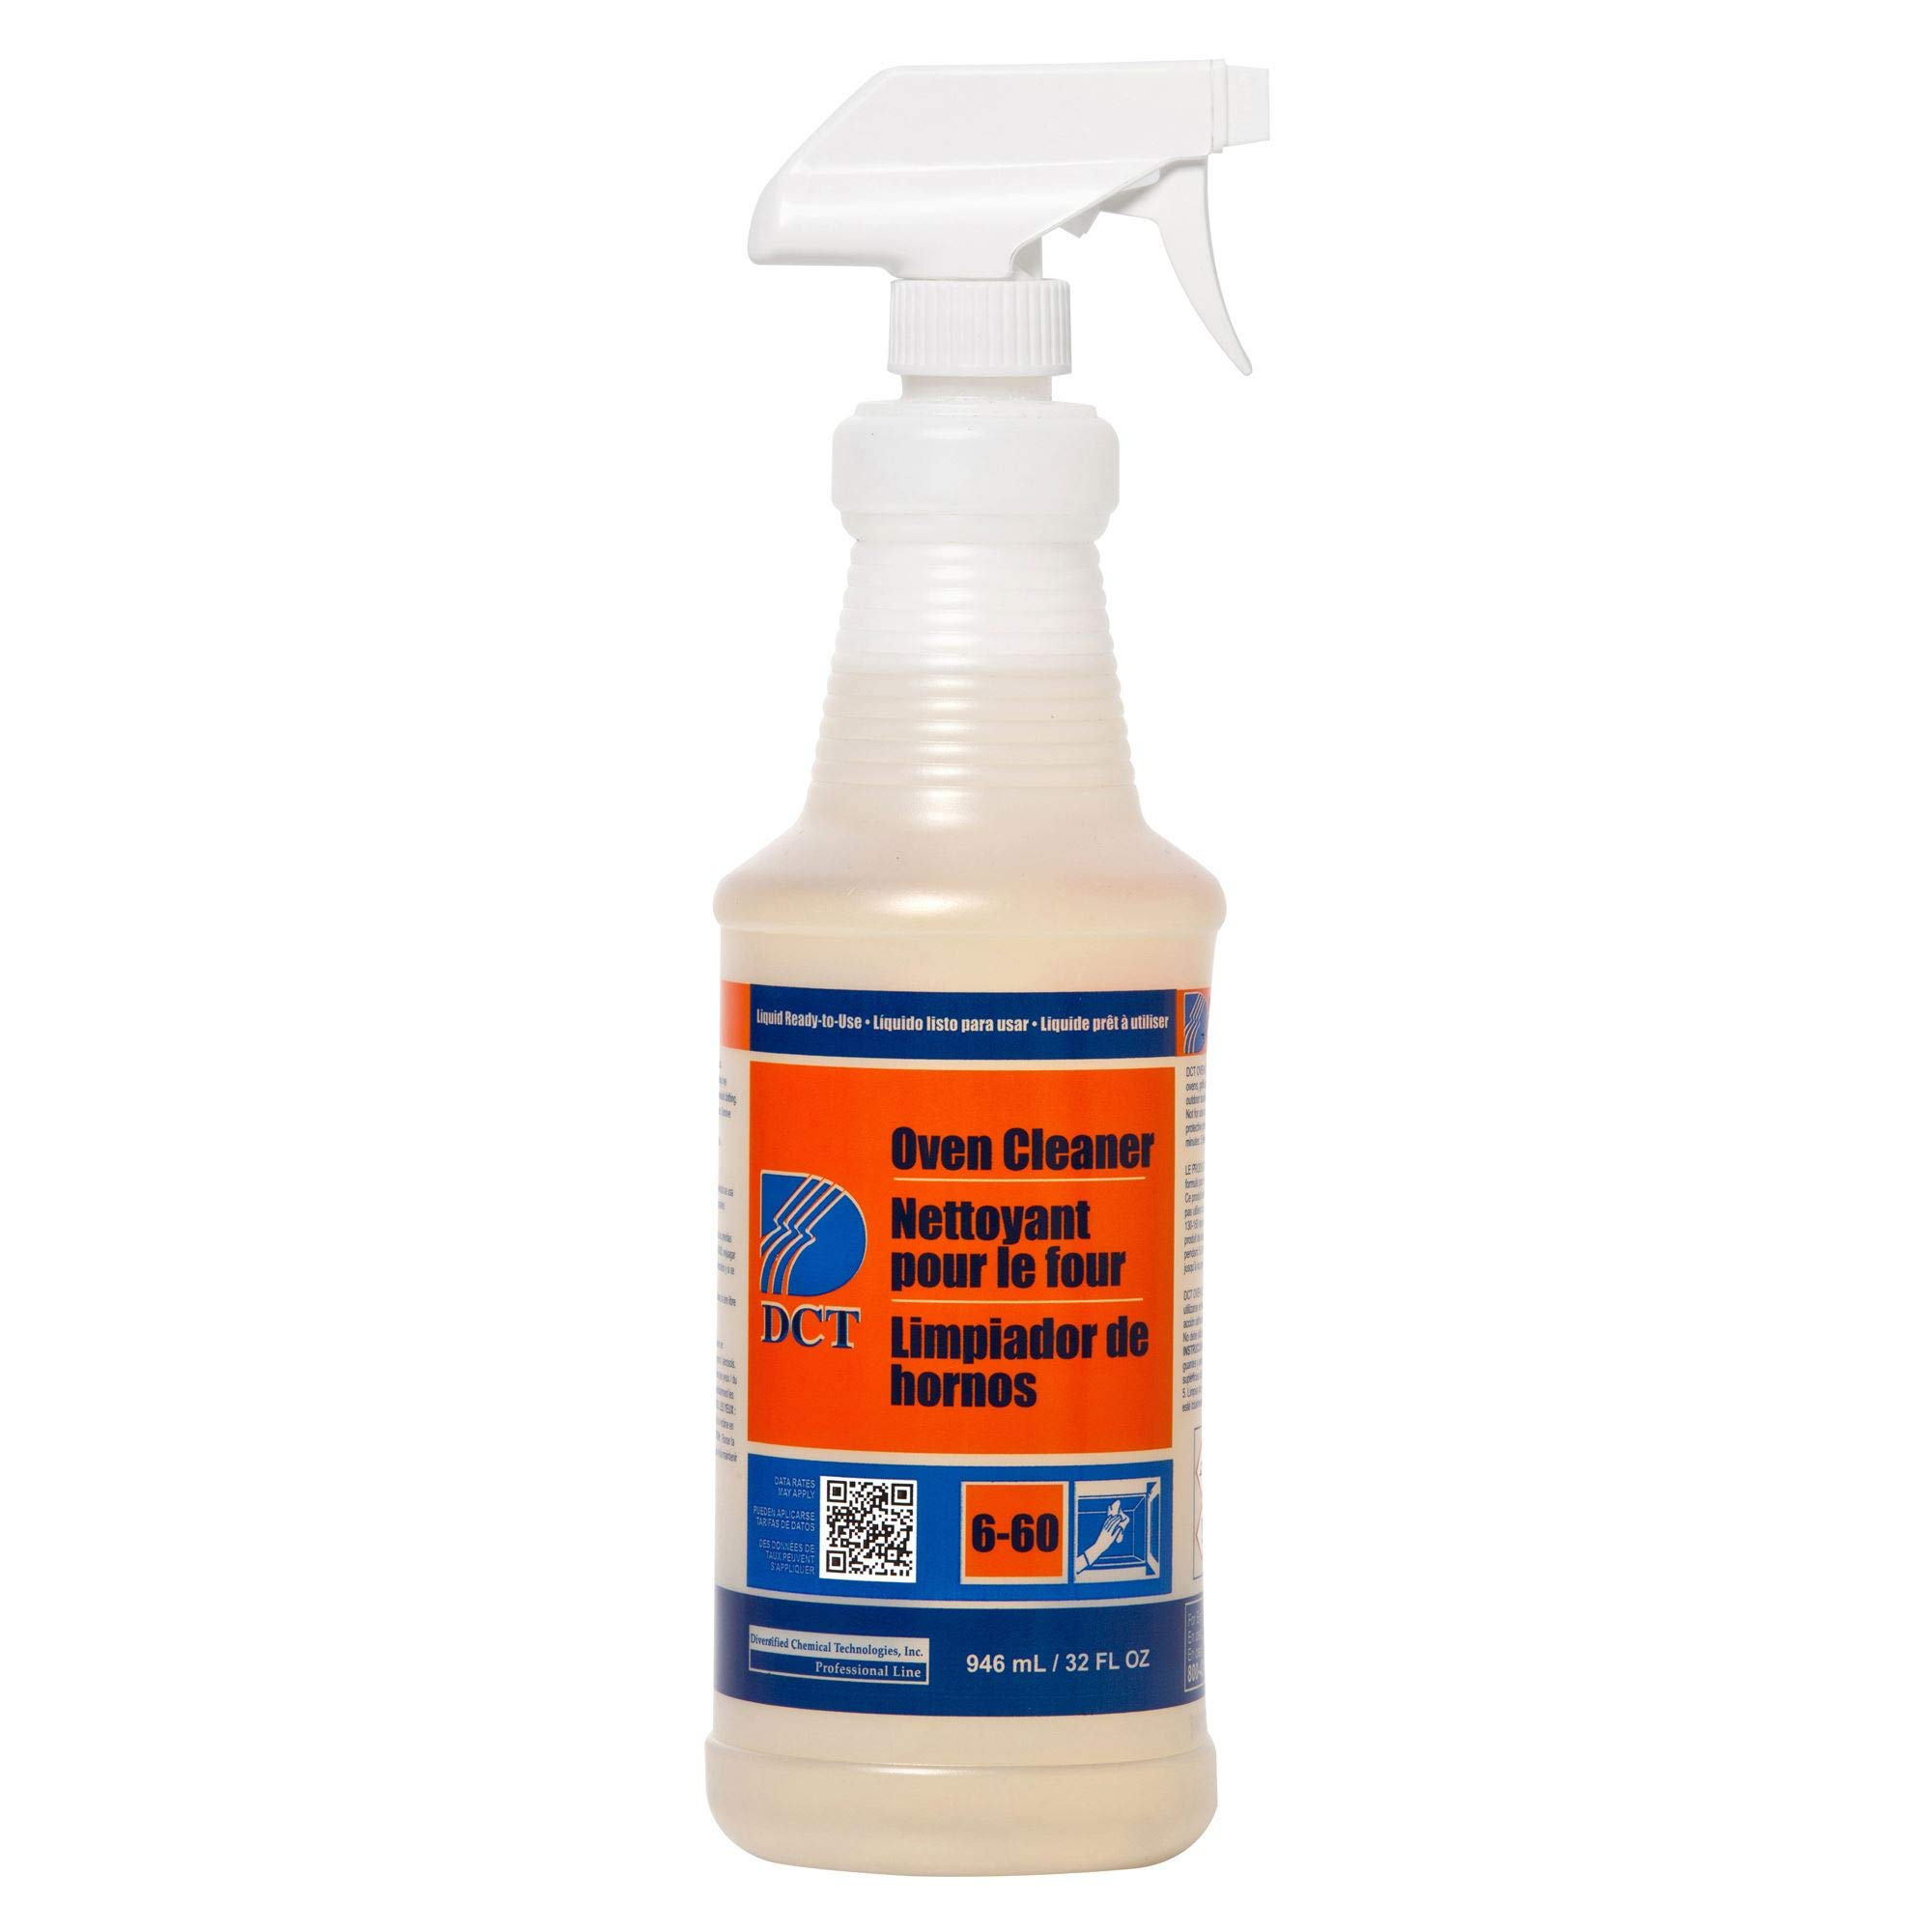 Diversified Chemical Dct Oven Cleaner, Rtu Sprayer, Case of 6/1 Qt, PGC00004 by Procter And Gamble